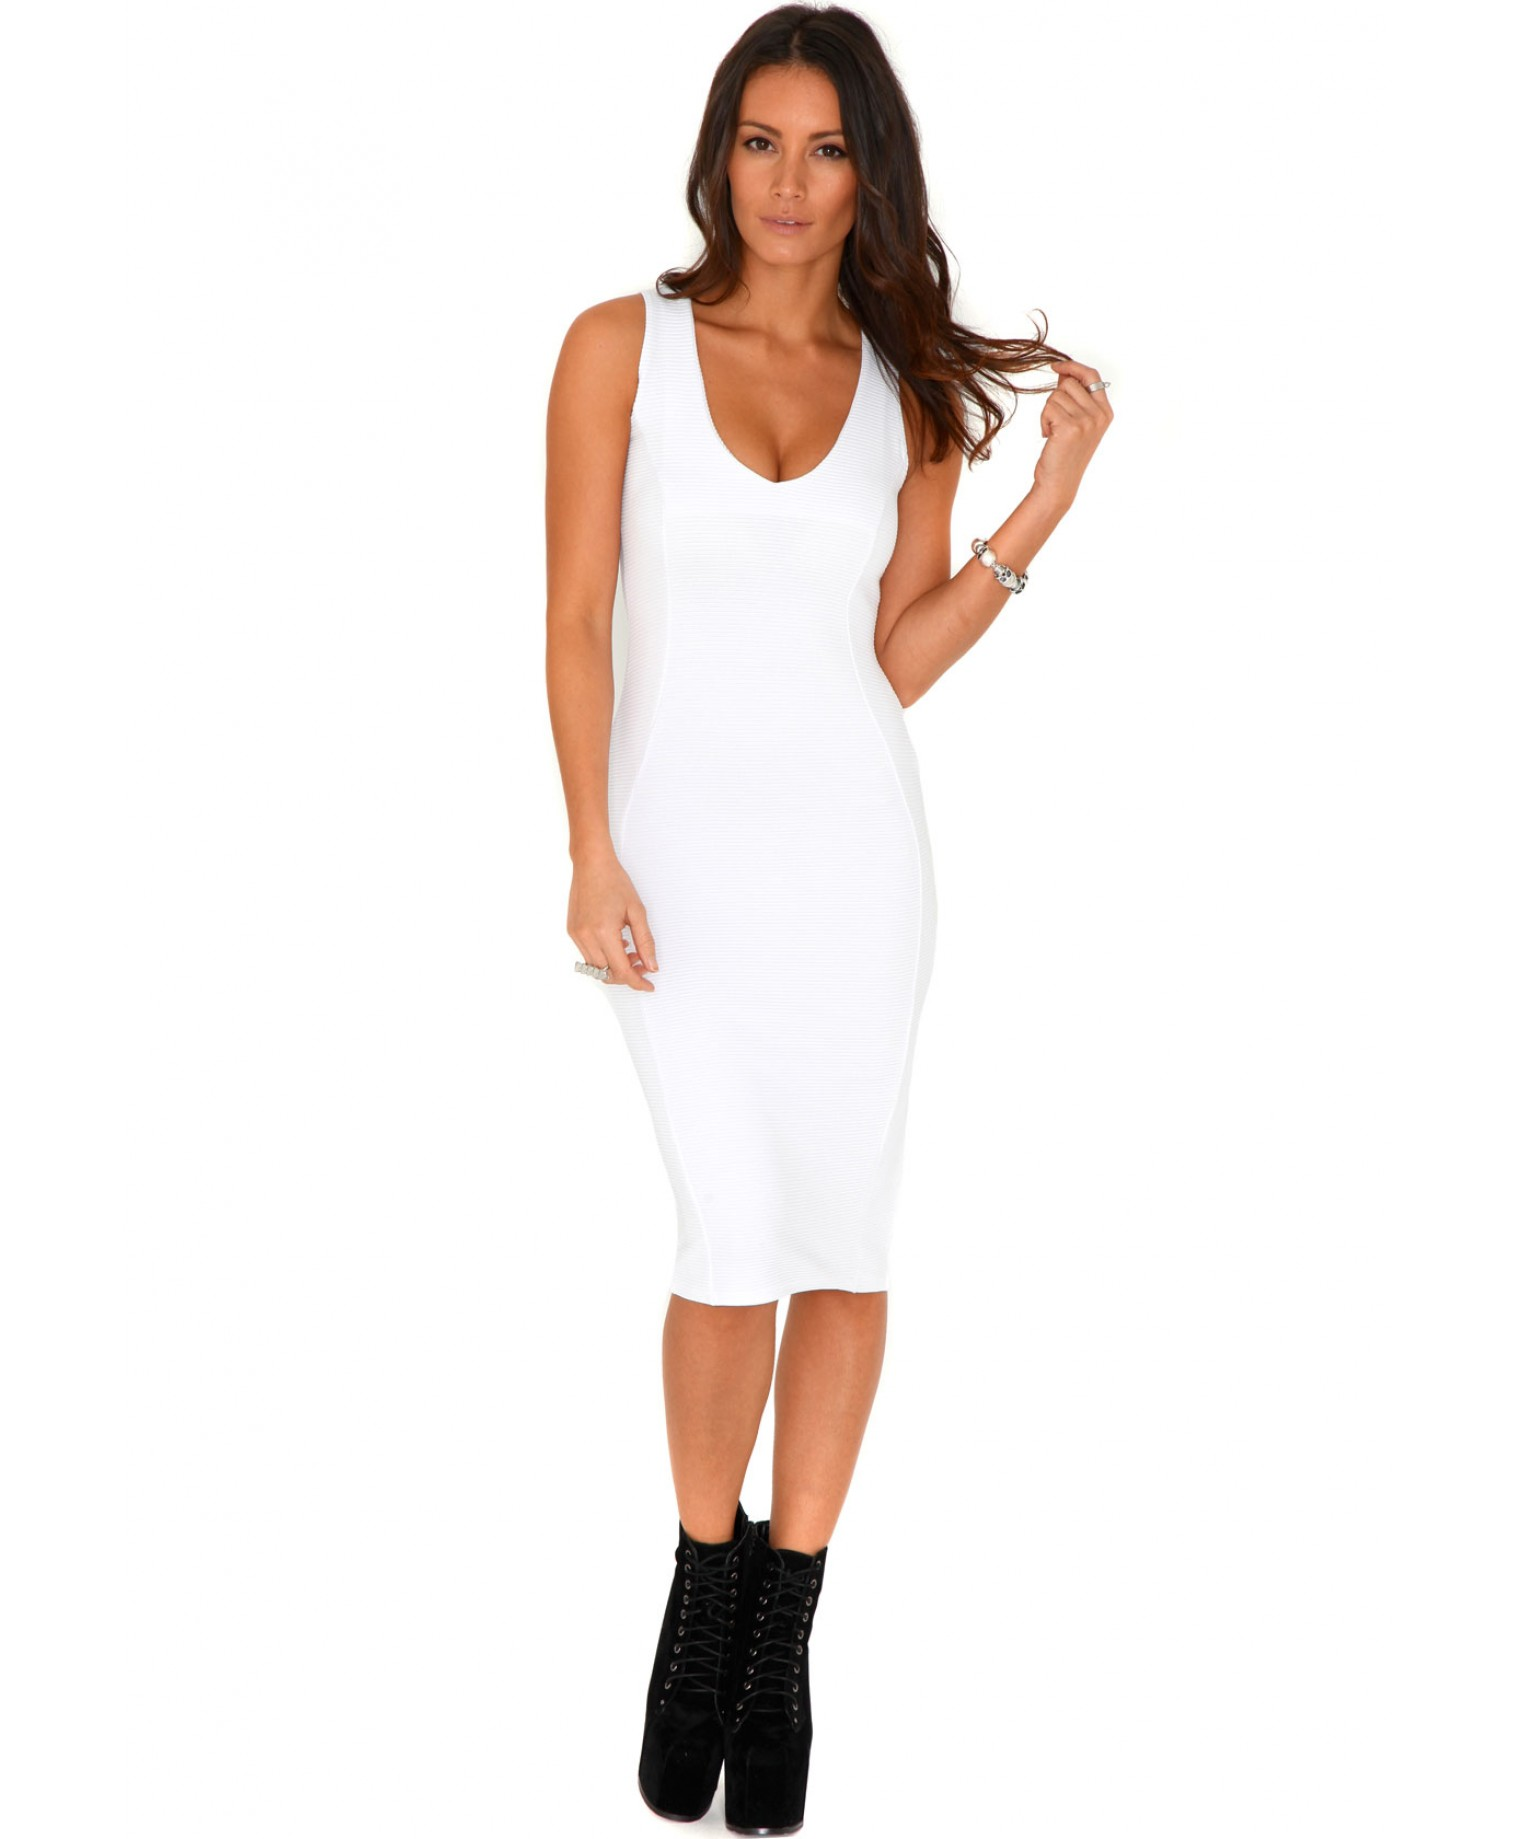 White Bodycon Dress Picture Collection Dressedupgirl Com